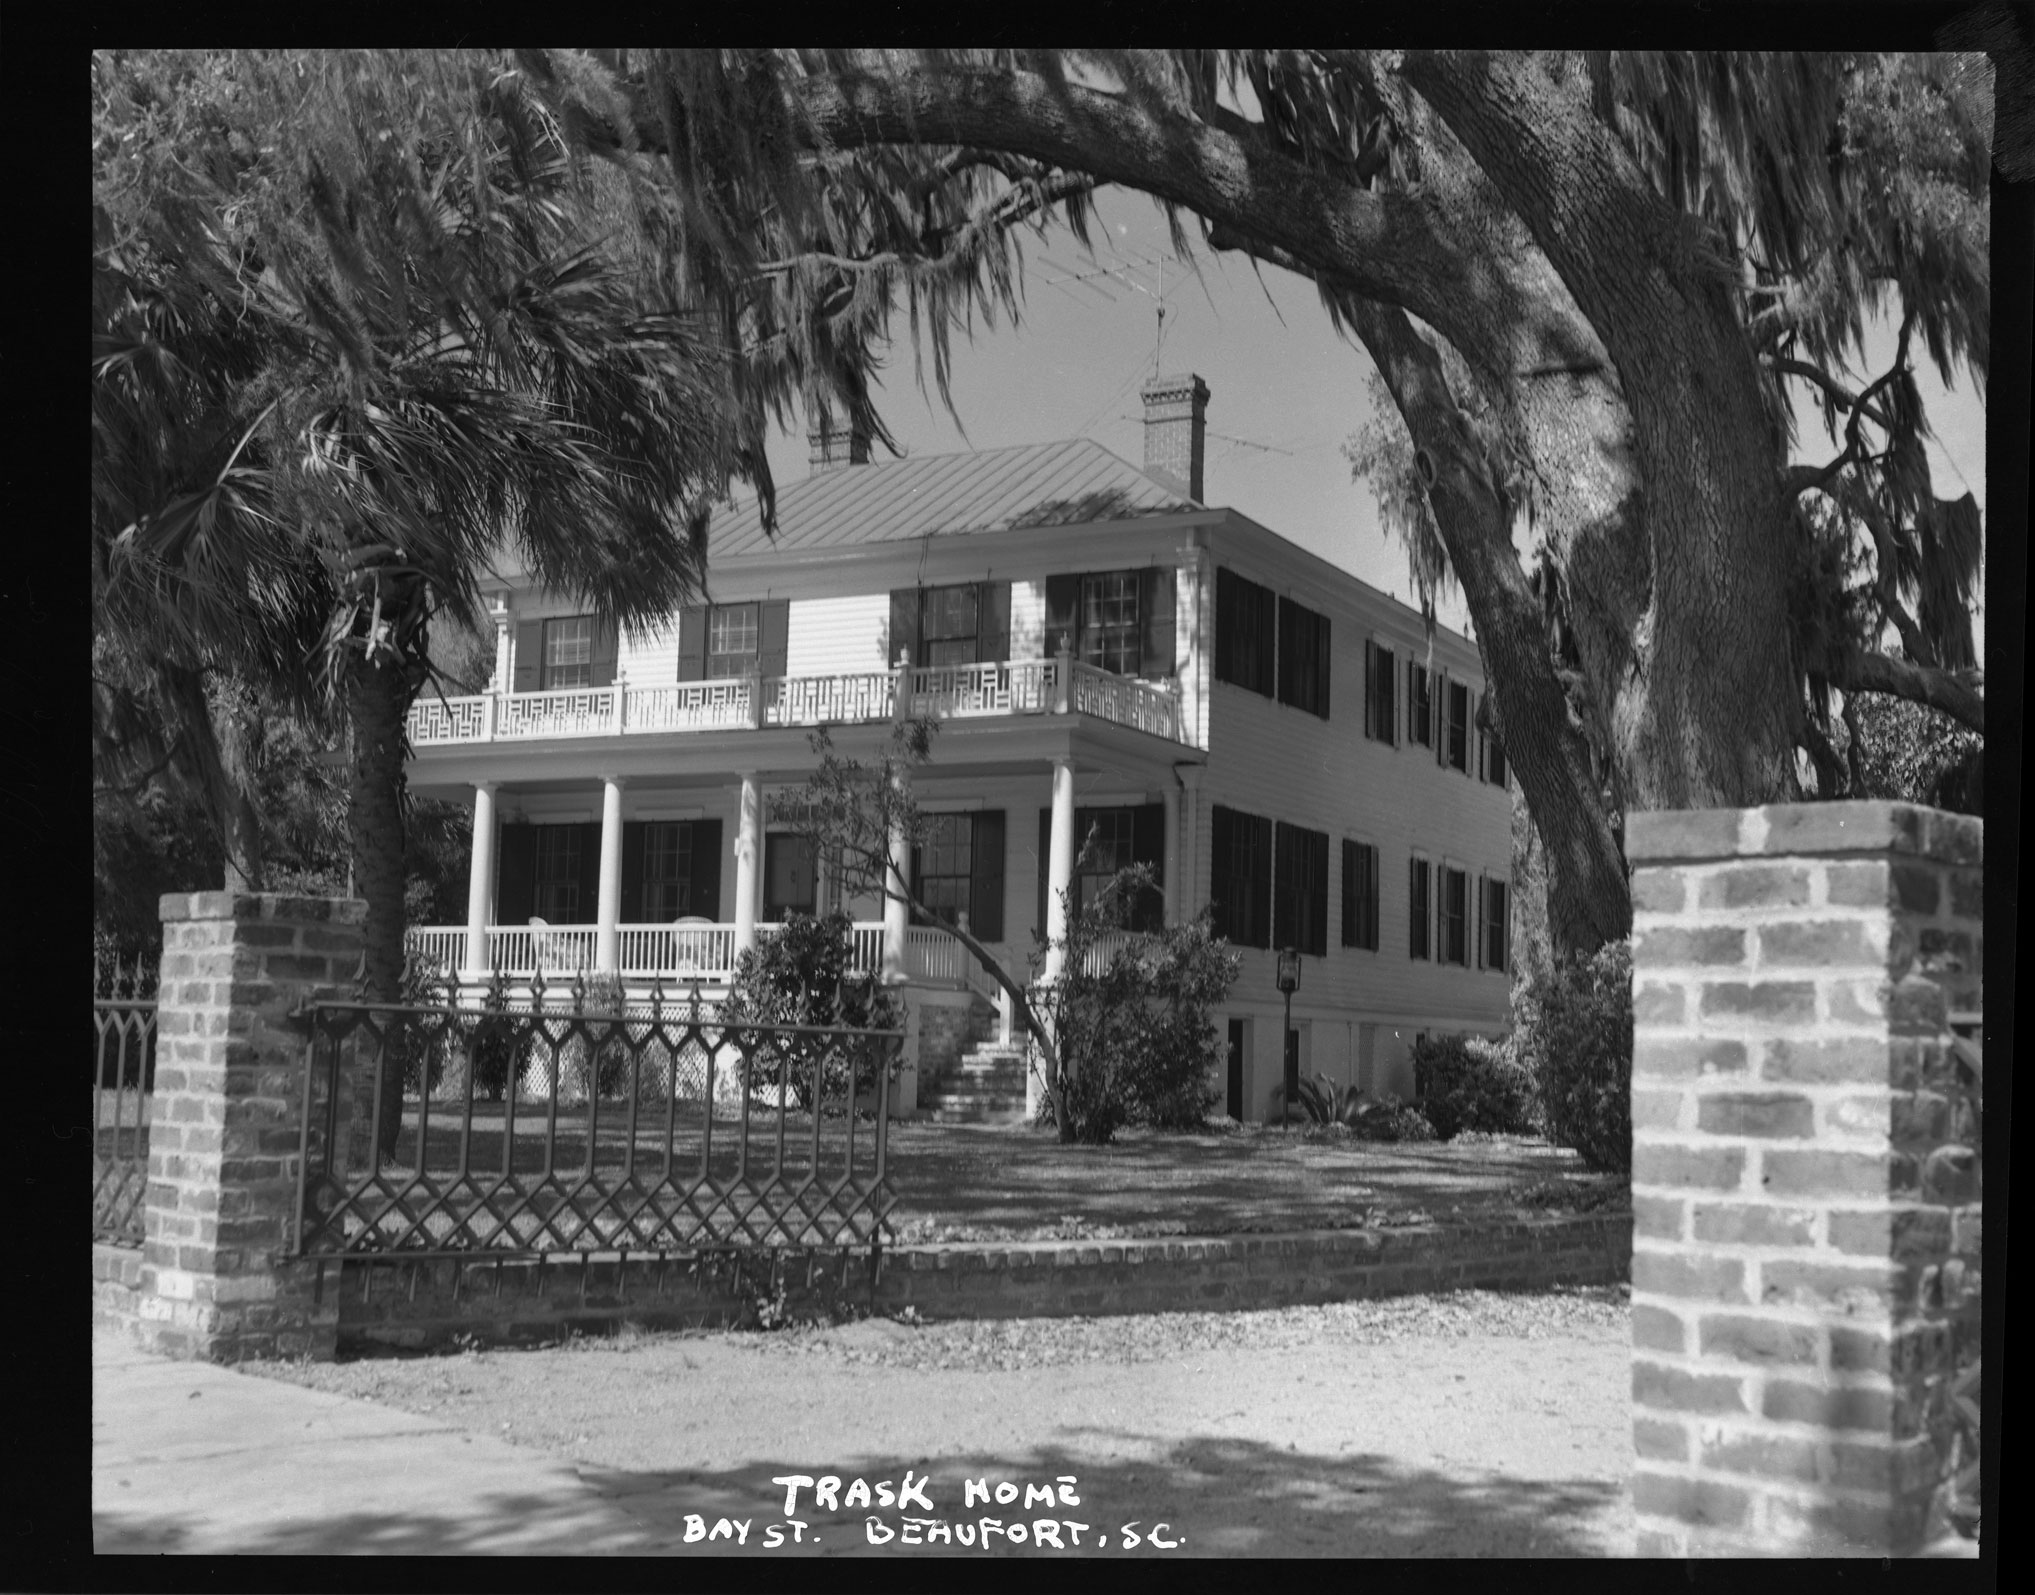 Trask Home, Bay St., Beaufort, SC